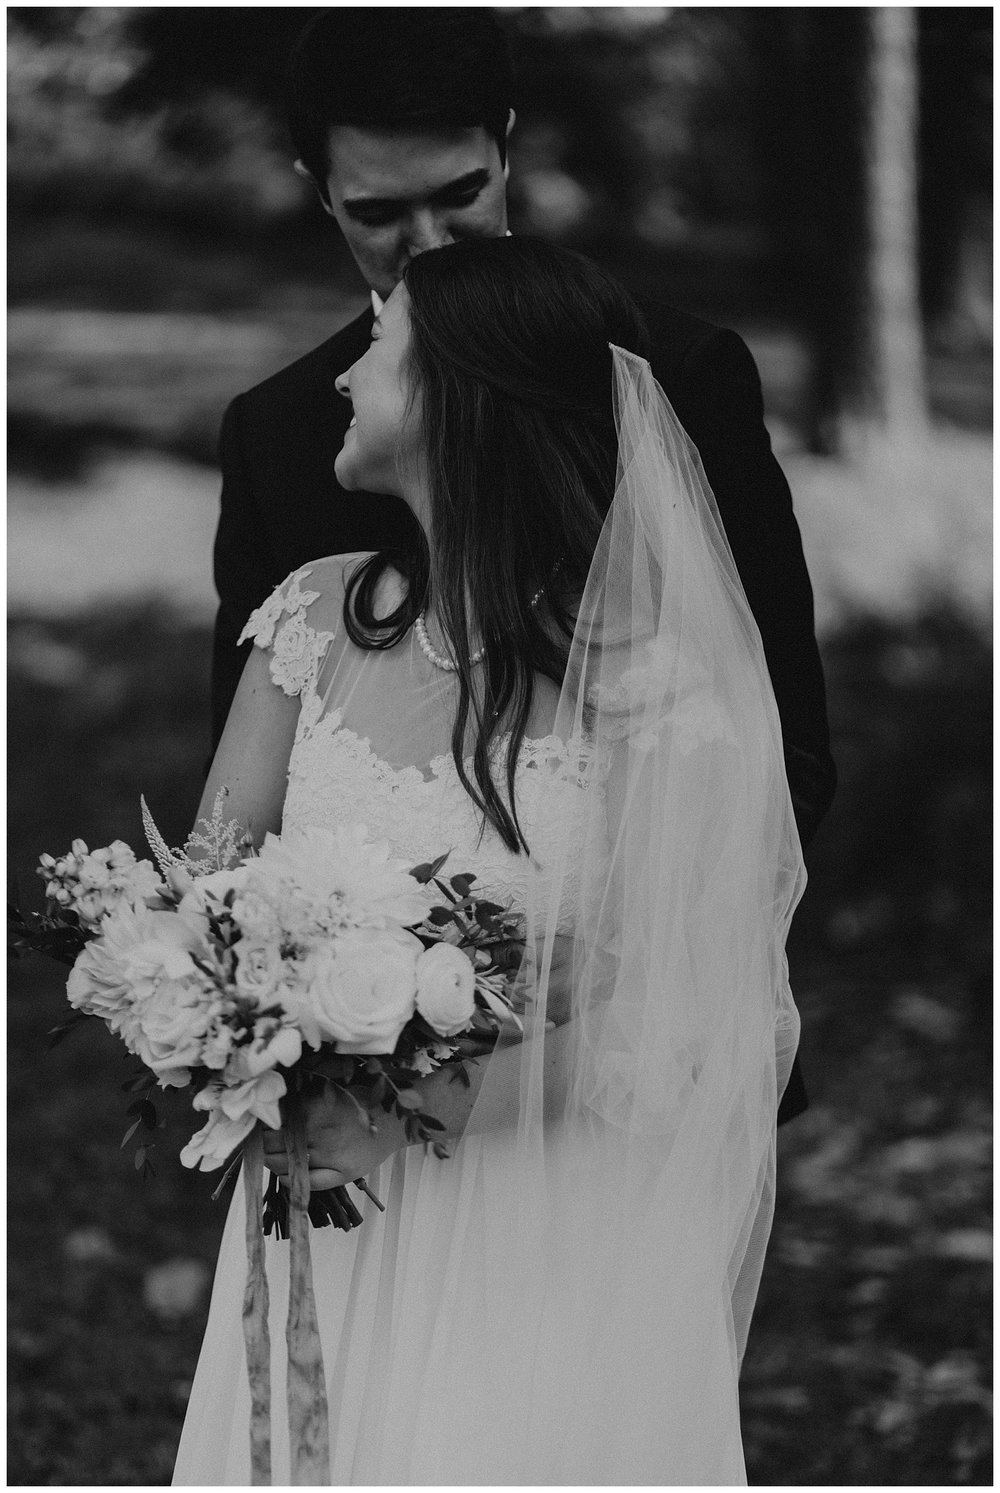 Madalynn Young Photography | Sarah Catherine + Will | Bridge Street Gallery and Loft | Atlanta Wedding Photographer_0271.jpg